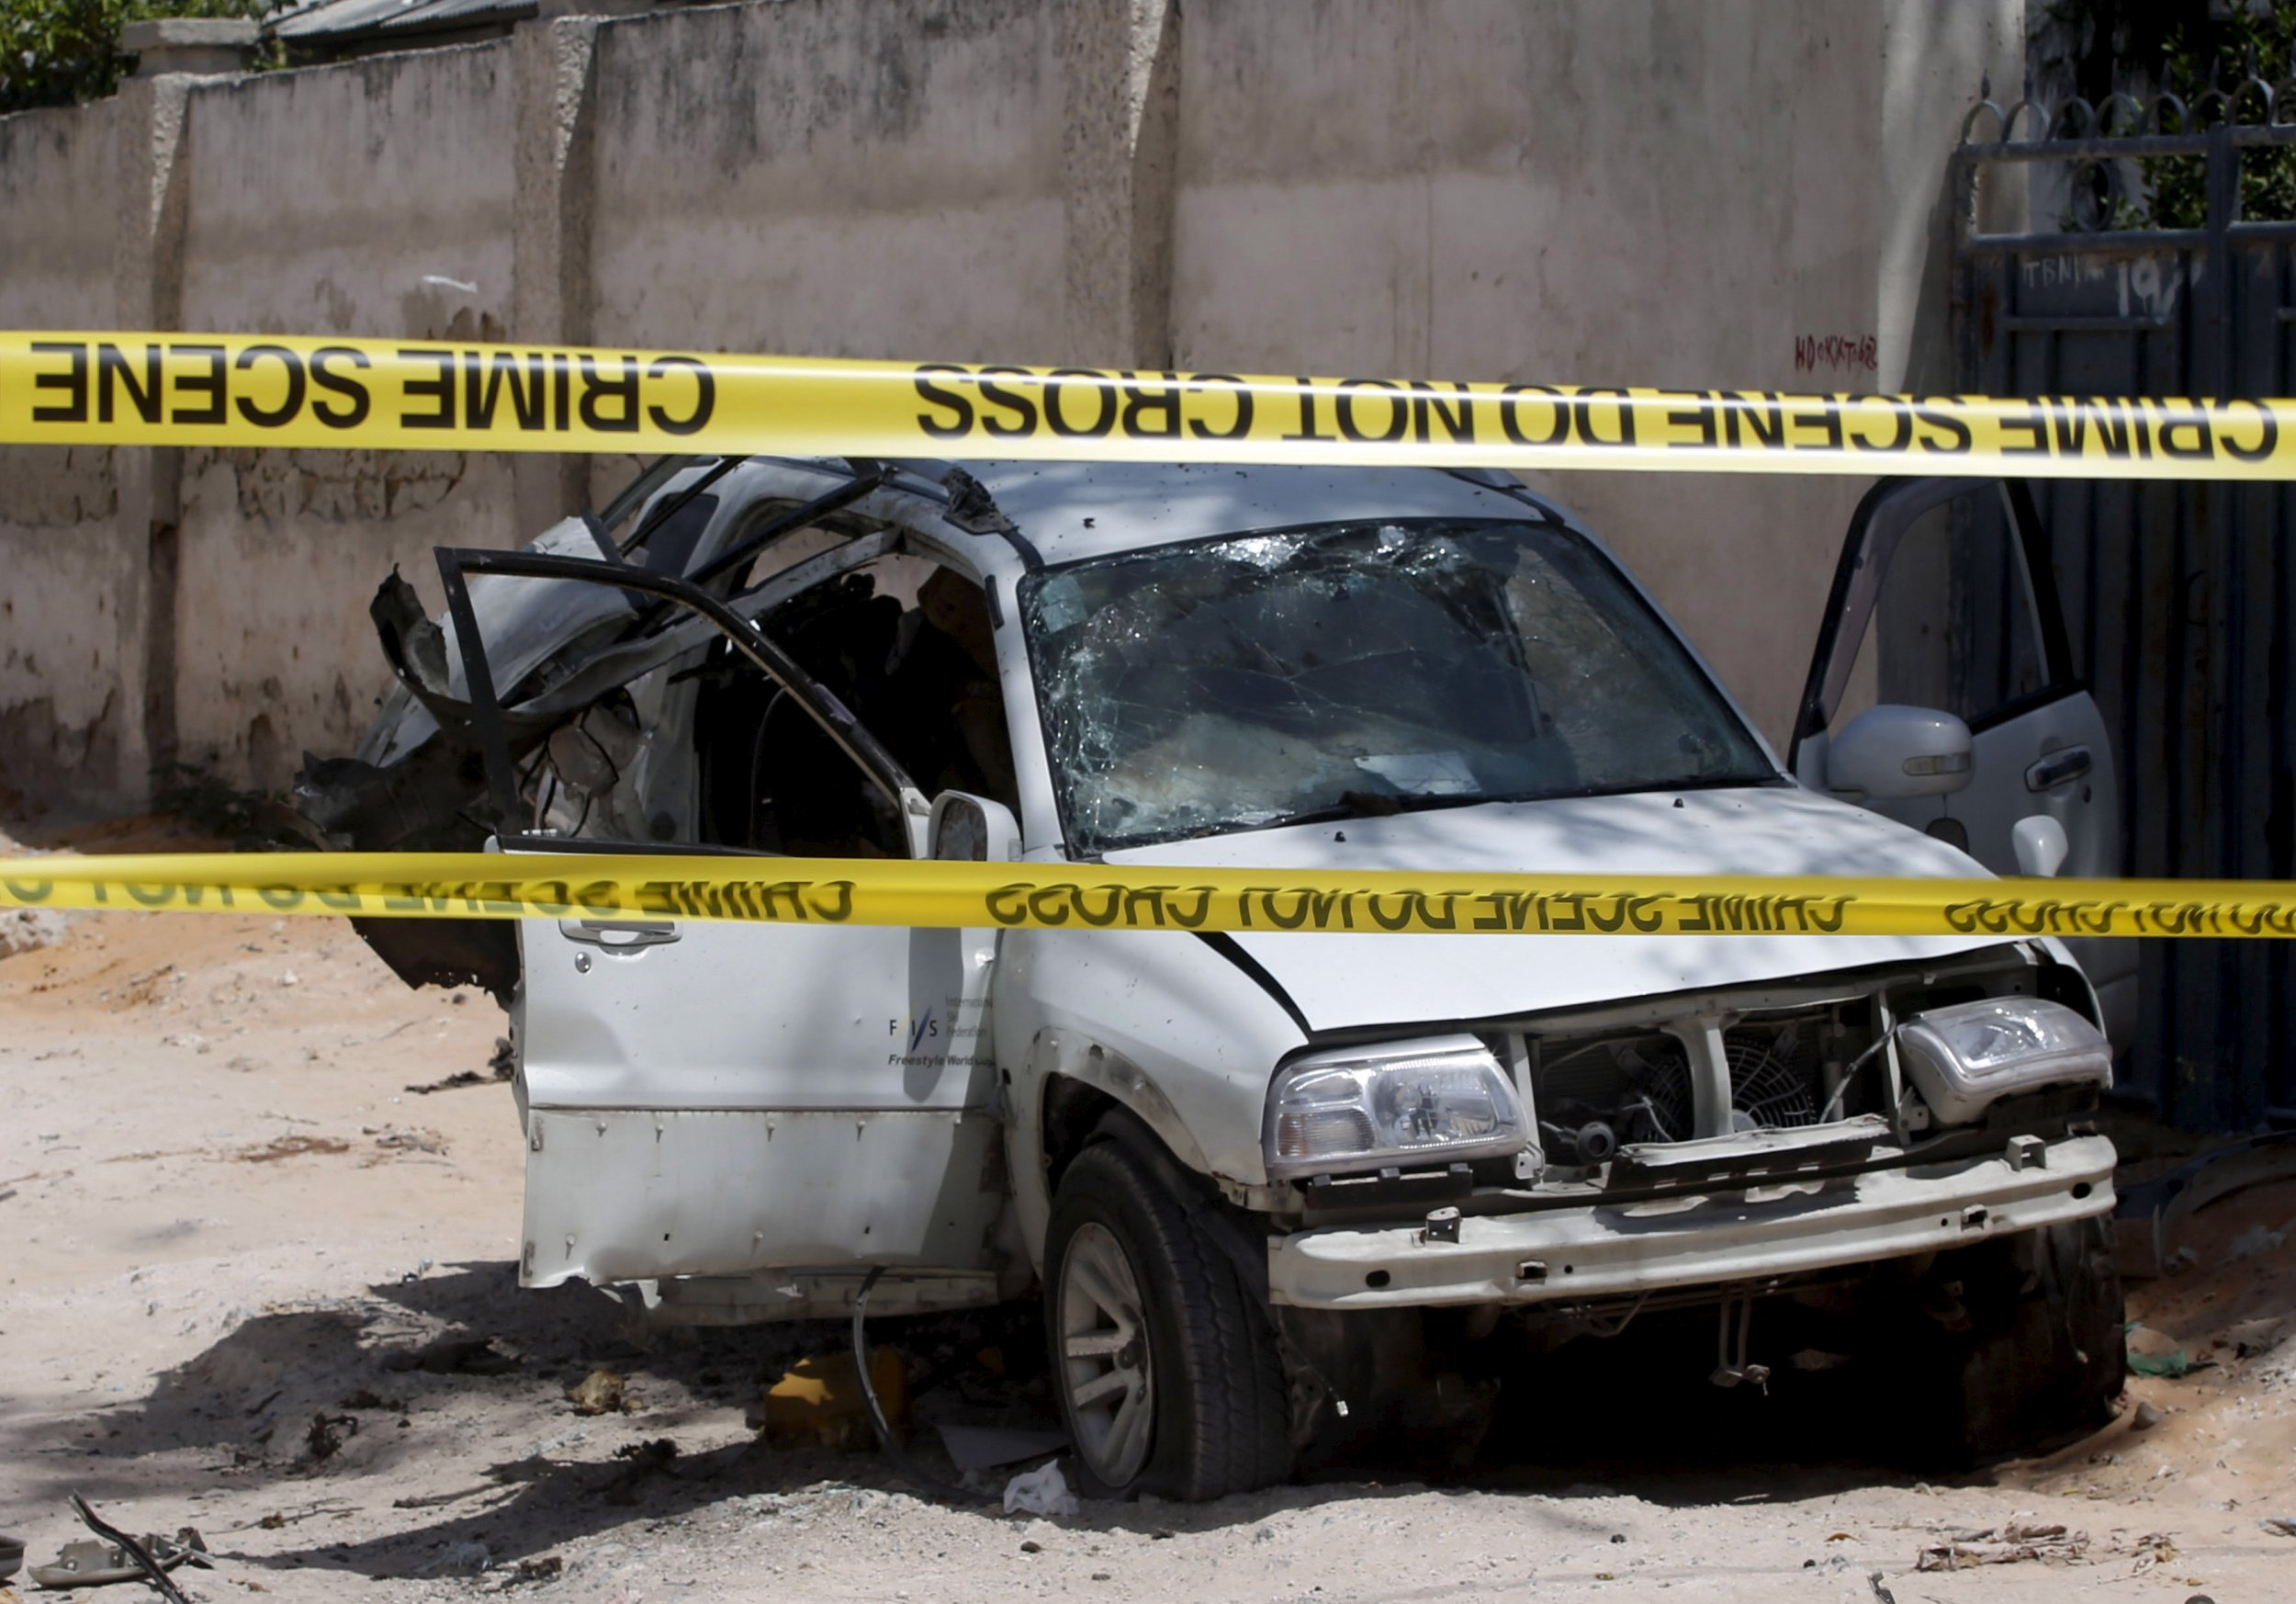 Car bomb blast in Mogadishu